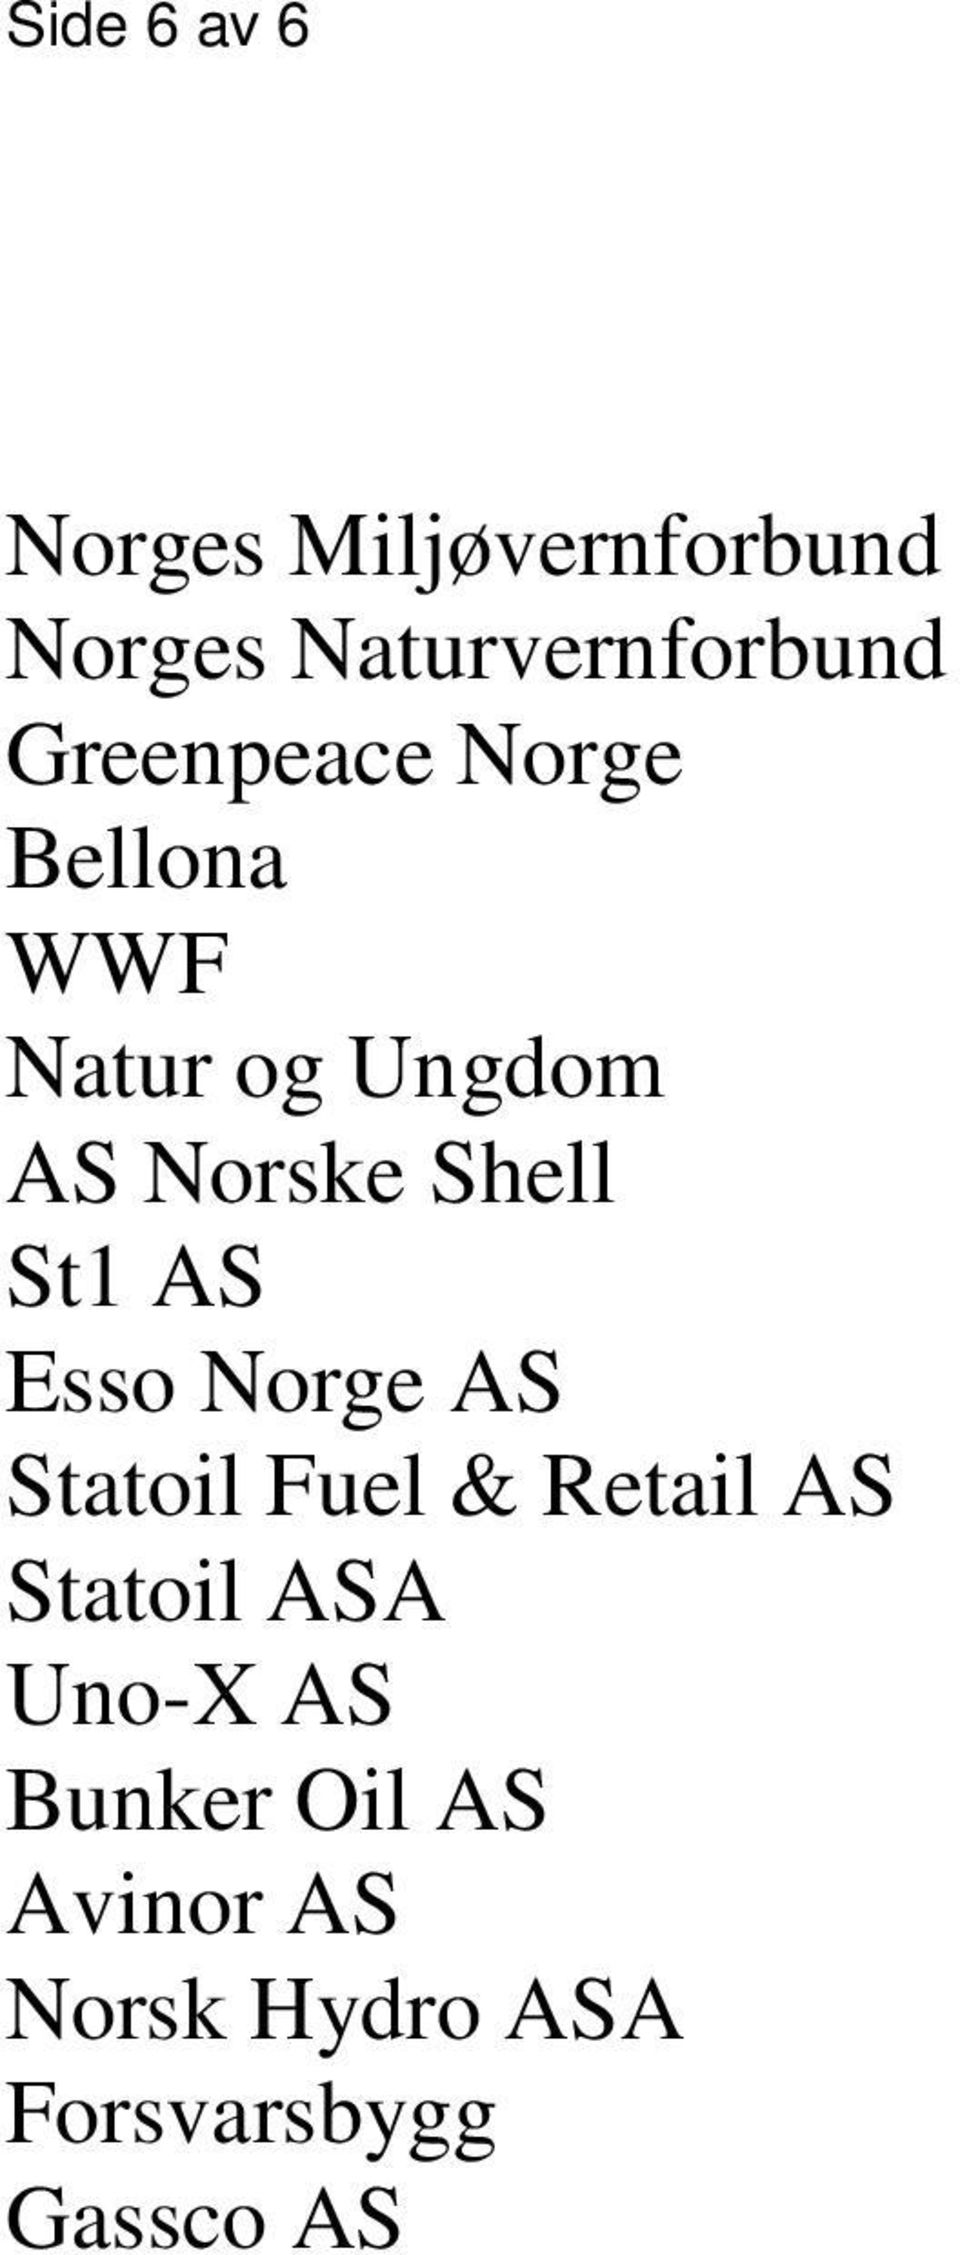 St1 AS Esso Norge AS Statoil Fuel & Retail AS Statoil ASA